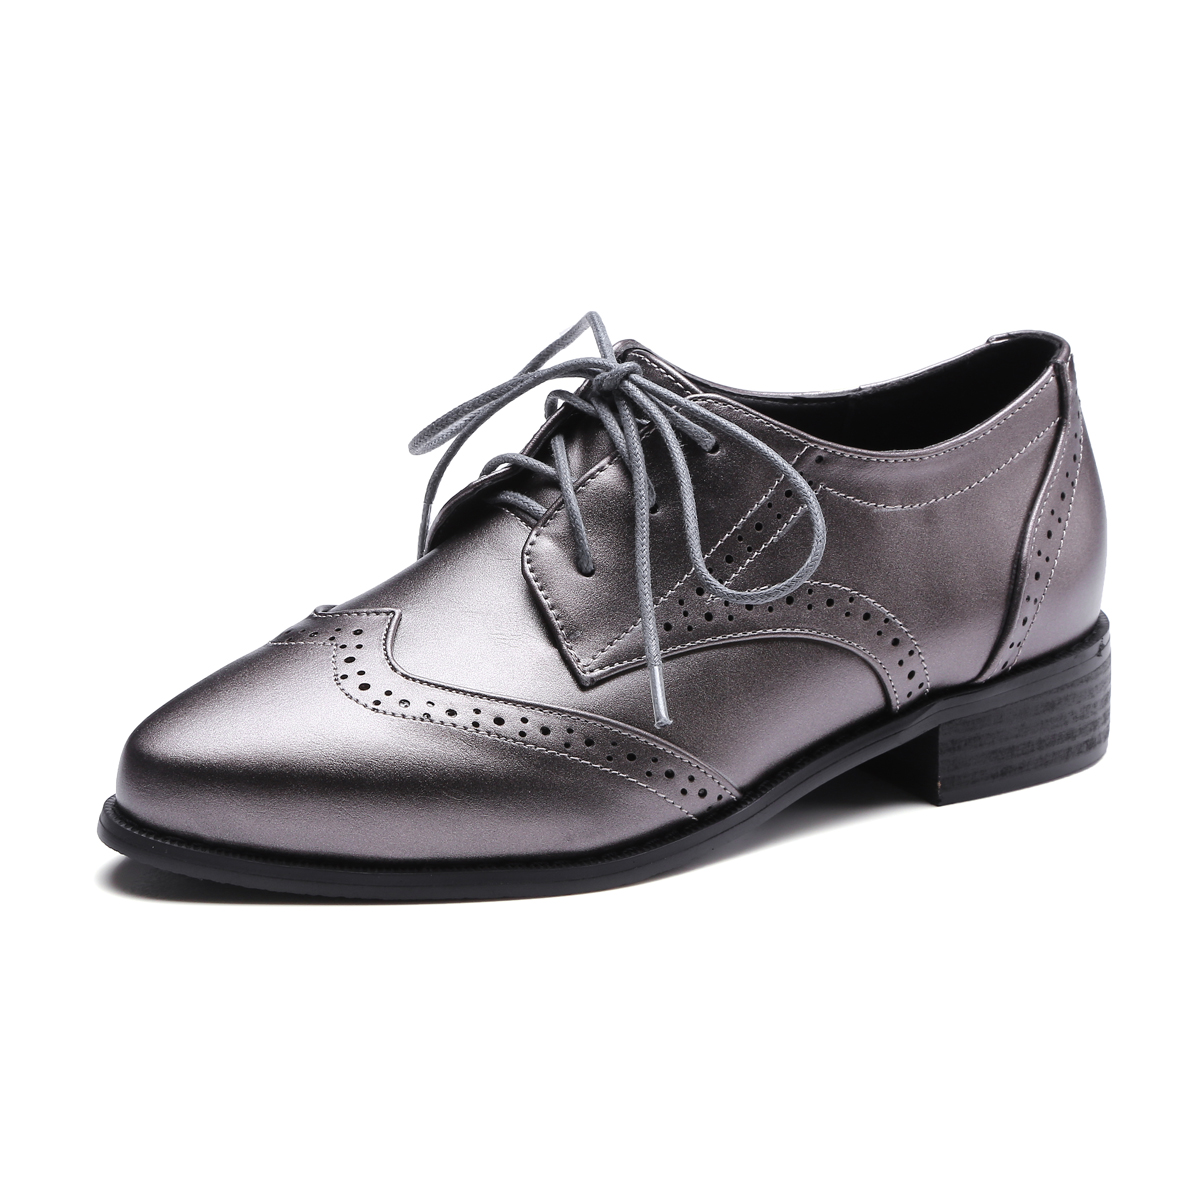 1b9fe473bda Αγορά Γυναικεία παπούτσια   XIUNINGYAN British Retro Oxford Shoes for Women  Patent Leather Pointed Toe Flat Shoes Women Brogues Oxfords Lace Up Footwear